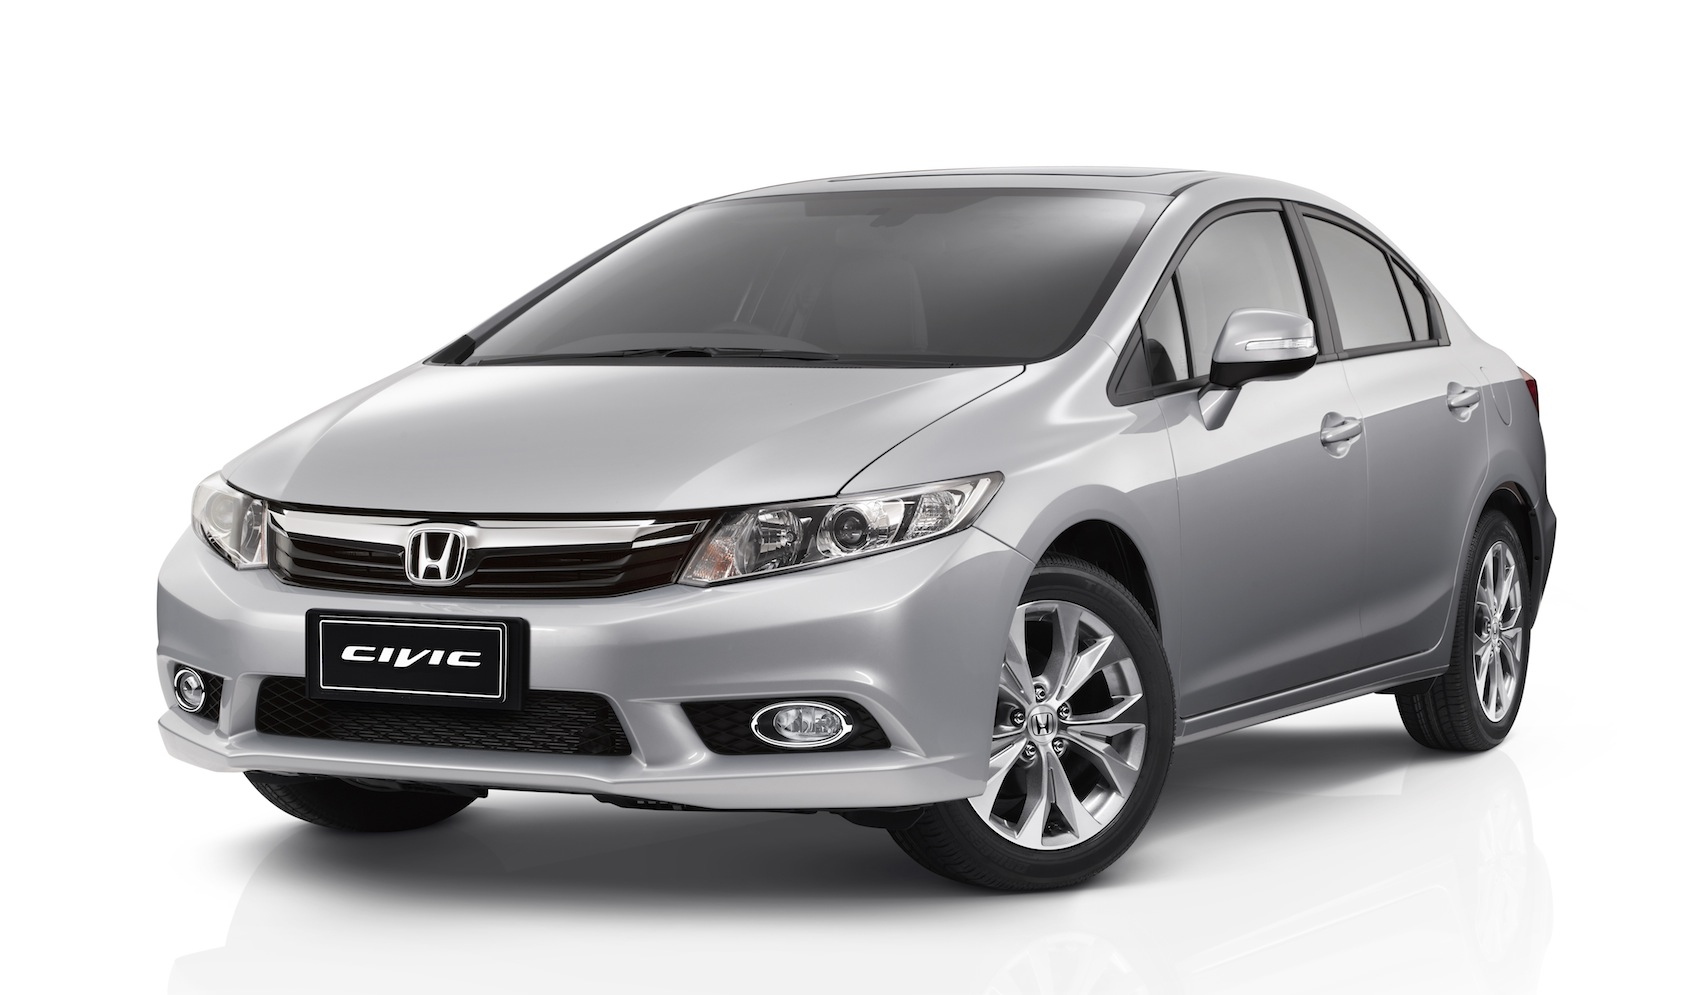 honda civic sedan and hybrid review photos caradvice. Black Bedroom Furniture Sets. Home Design Ideas